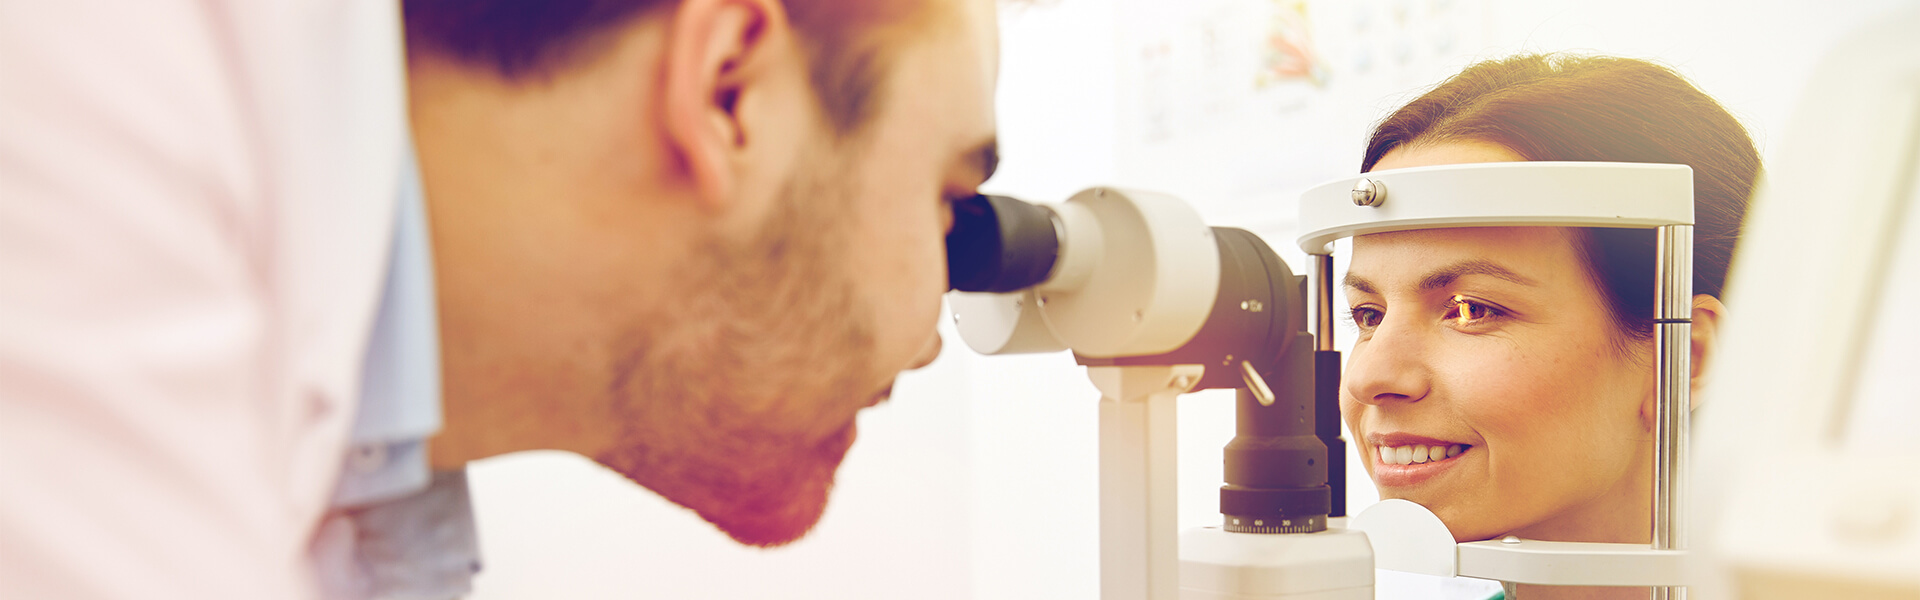 Glaucoma Evaluation in Calgary